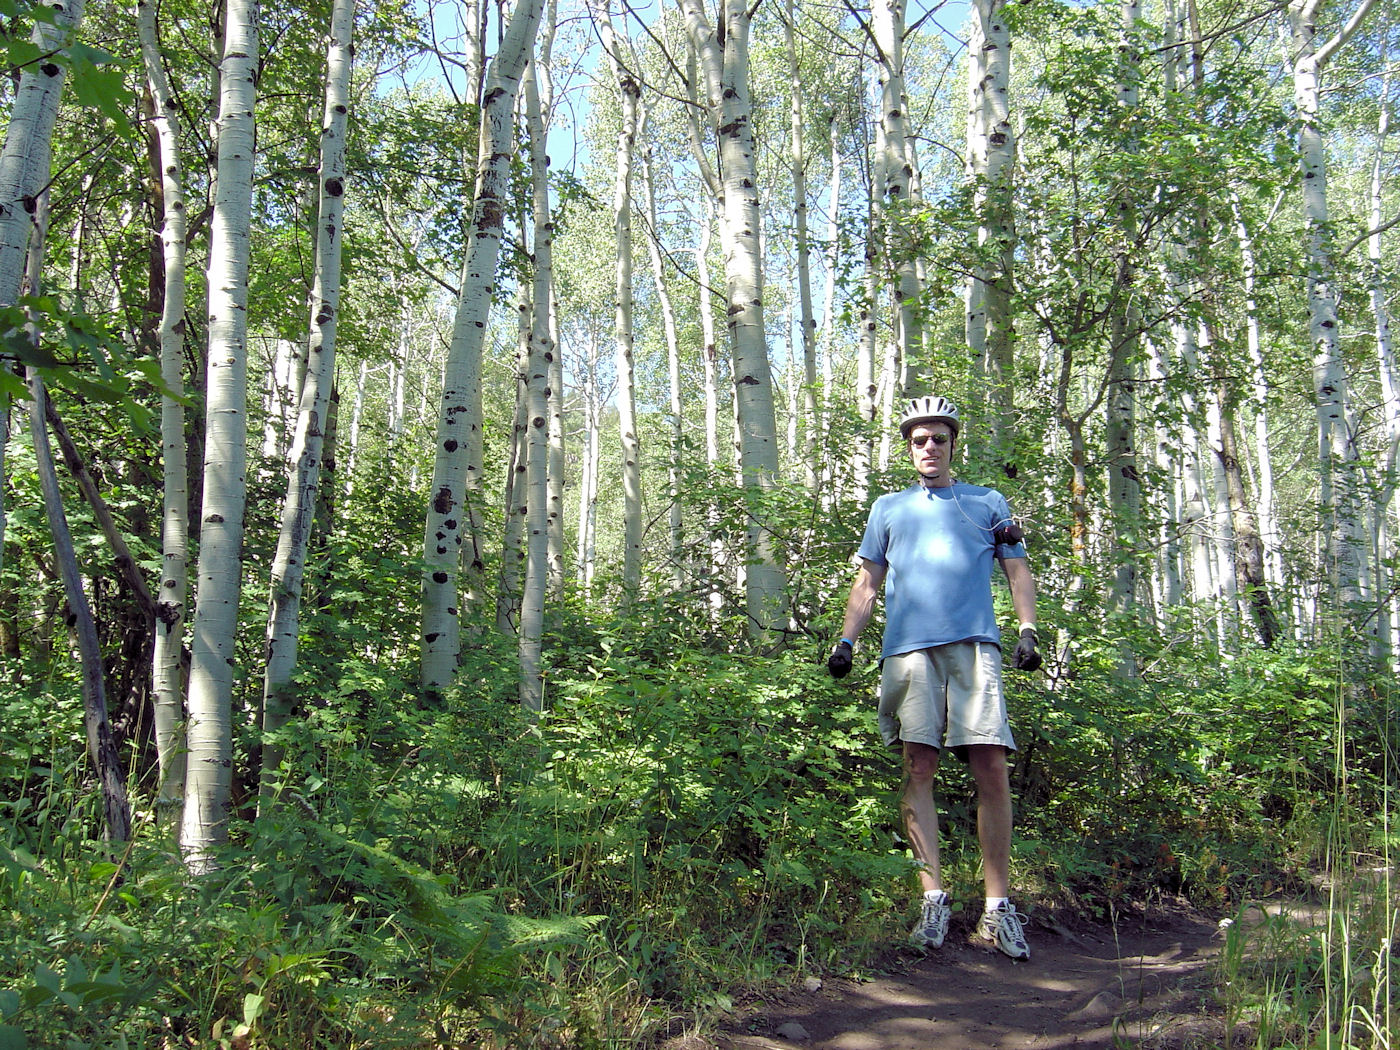 mountain biking in aspen trees